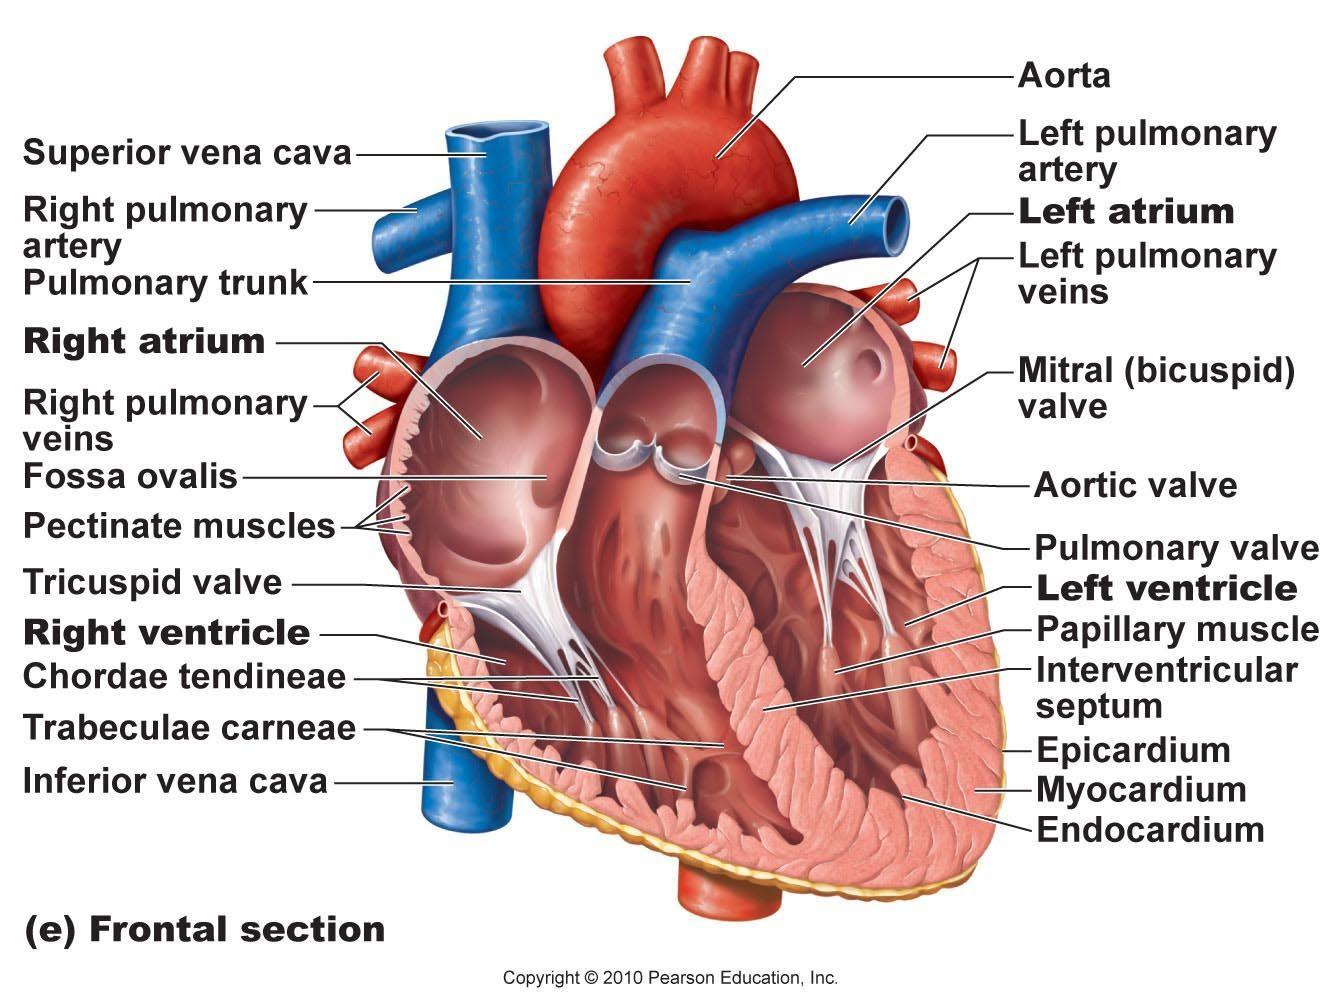 Pictures with parts labeled google search parts labeled heart diagram pictures with parts labeled google search ccuart Gallery